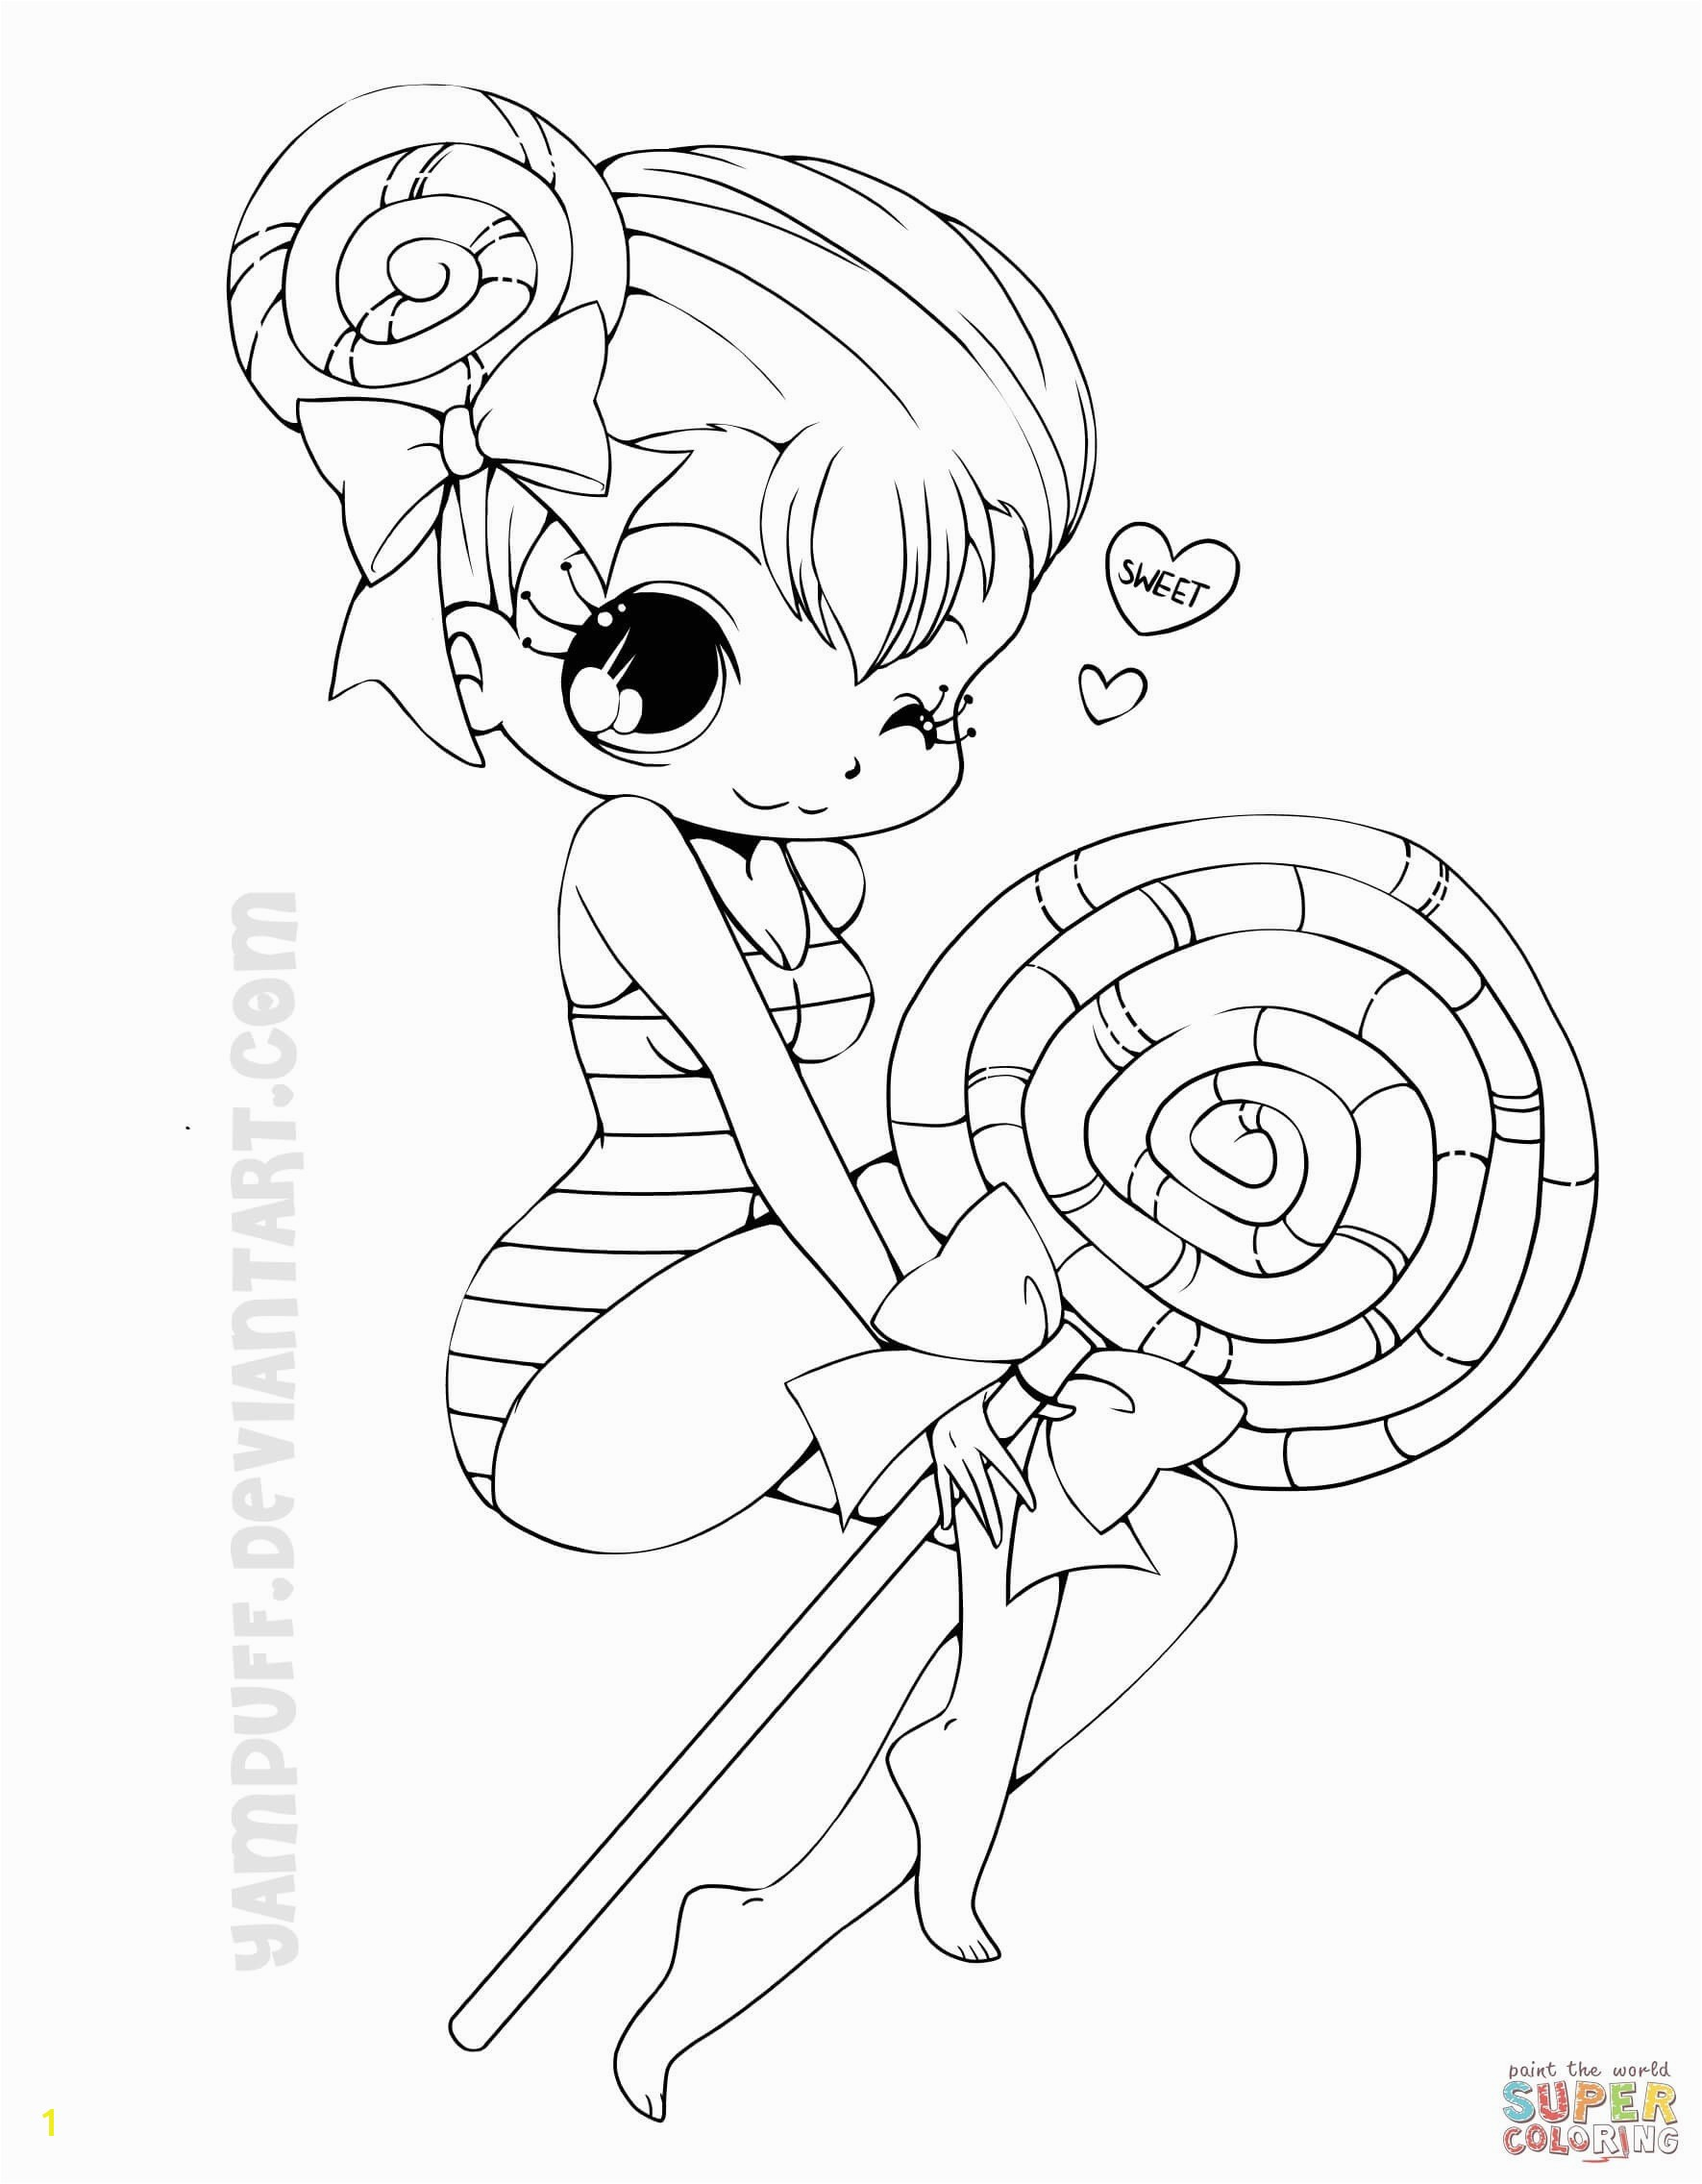 Printable Anime Coloring Pages Luxury Cute Anime Chibi Girl Coloring Pages